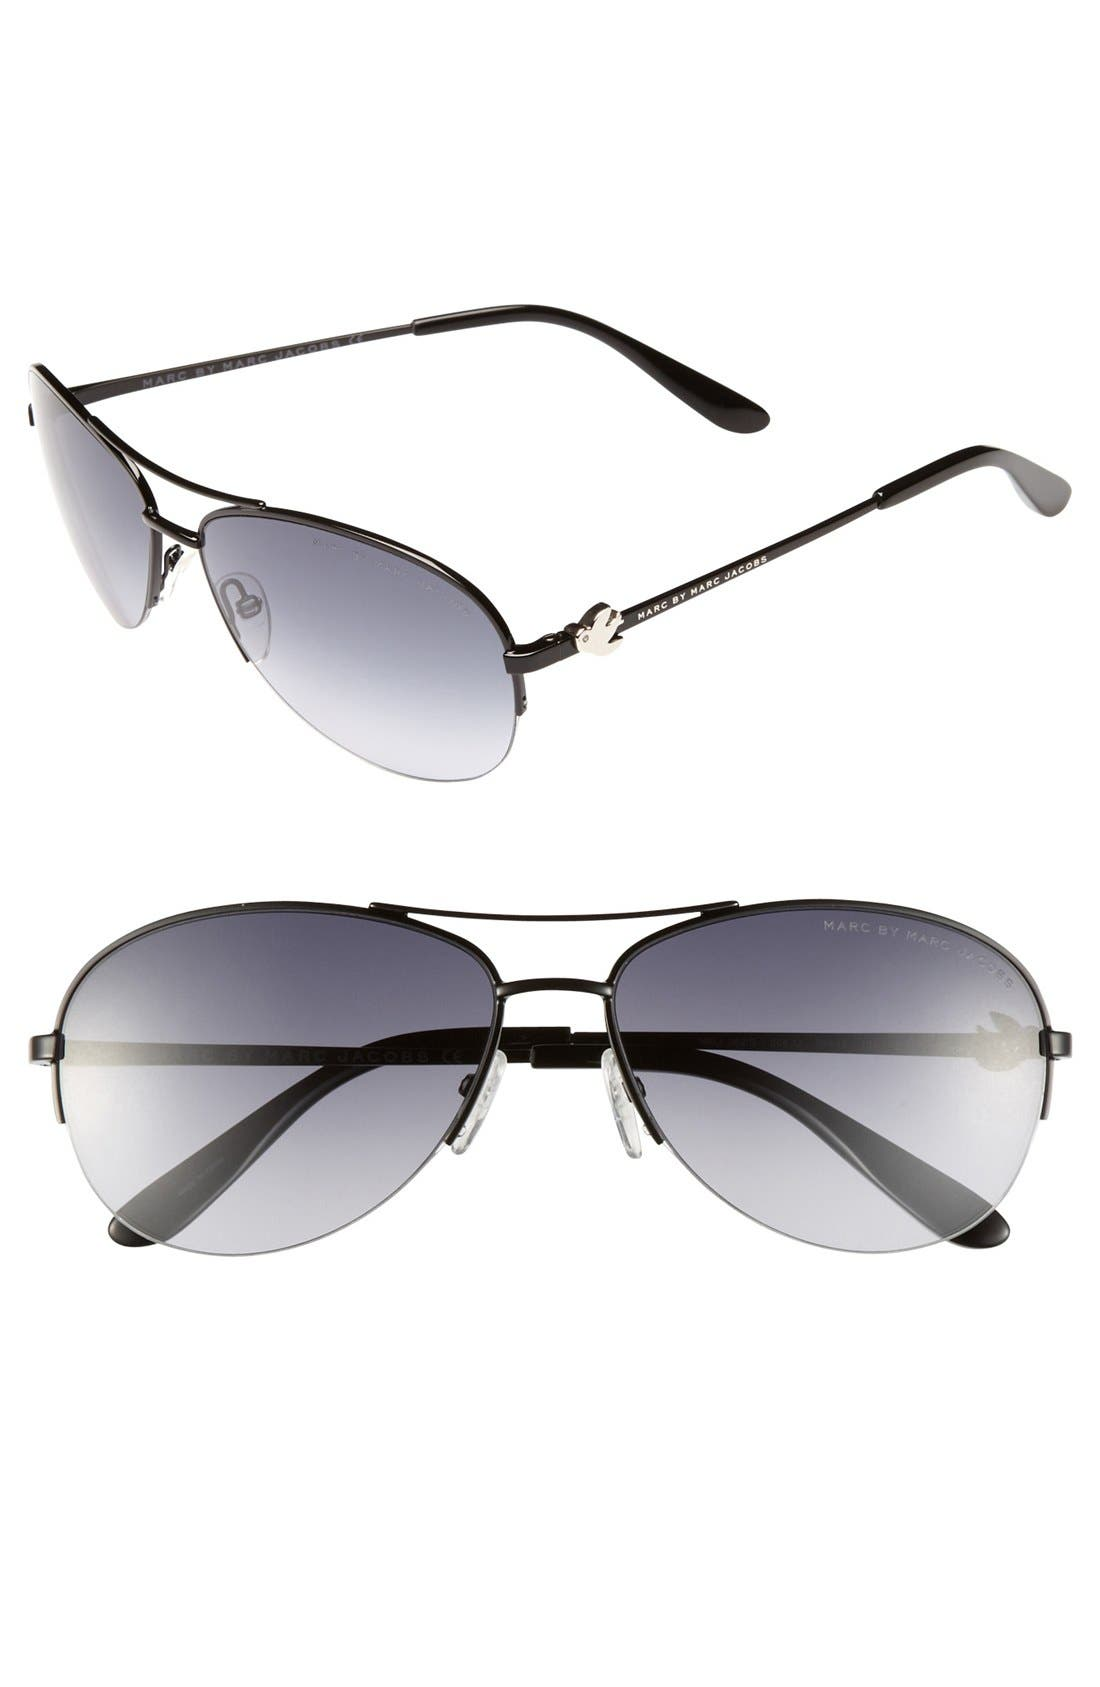 Main Image - MARC BY MARC JACOBS 59mm Aviator Sunglasses